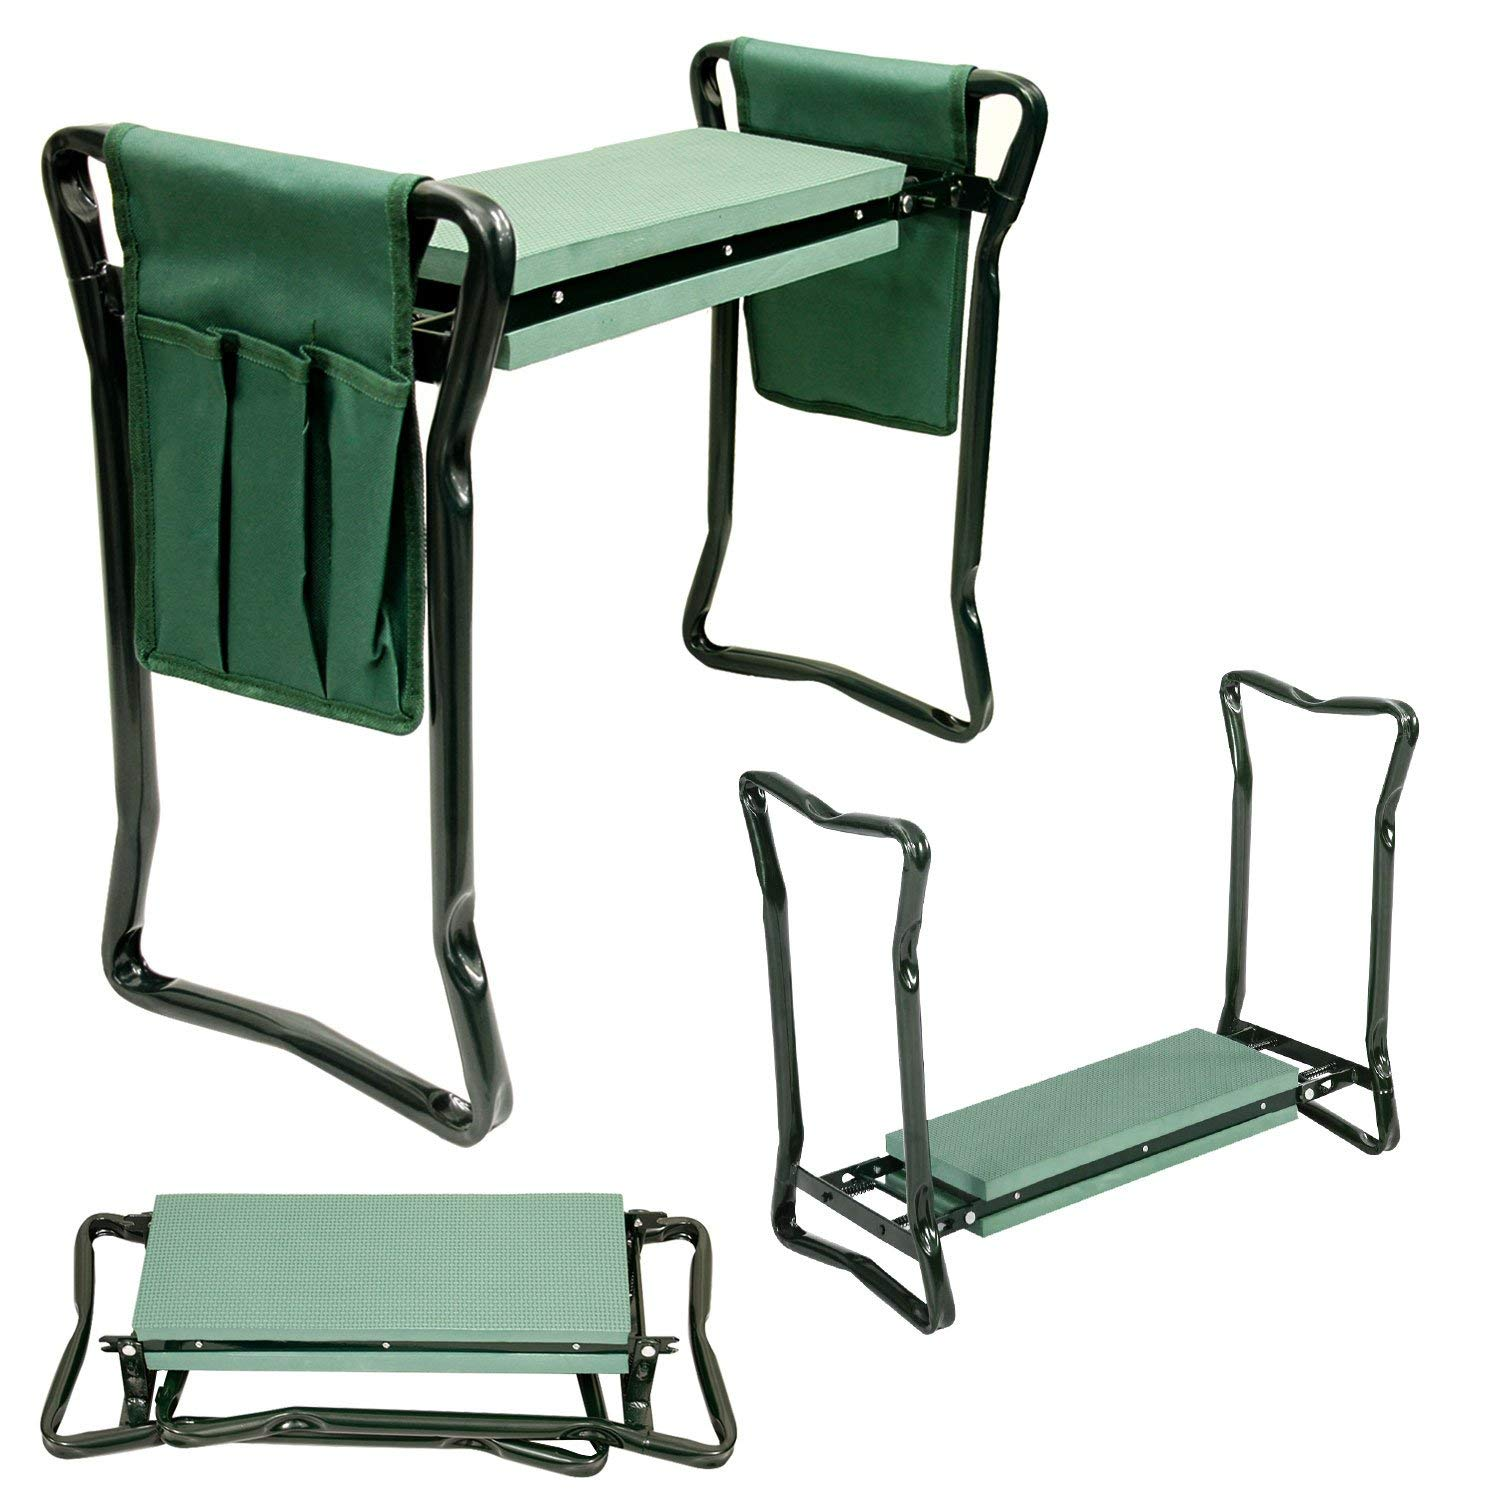 U.S. Garden Supply Foldable Garden Kneeler and Seat with 2 Tool Pouches – Soft EVA Foam Knee Pad Cushion – Portable Folding Stool Bench Chair